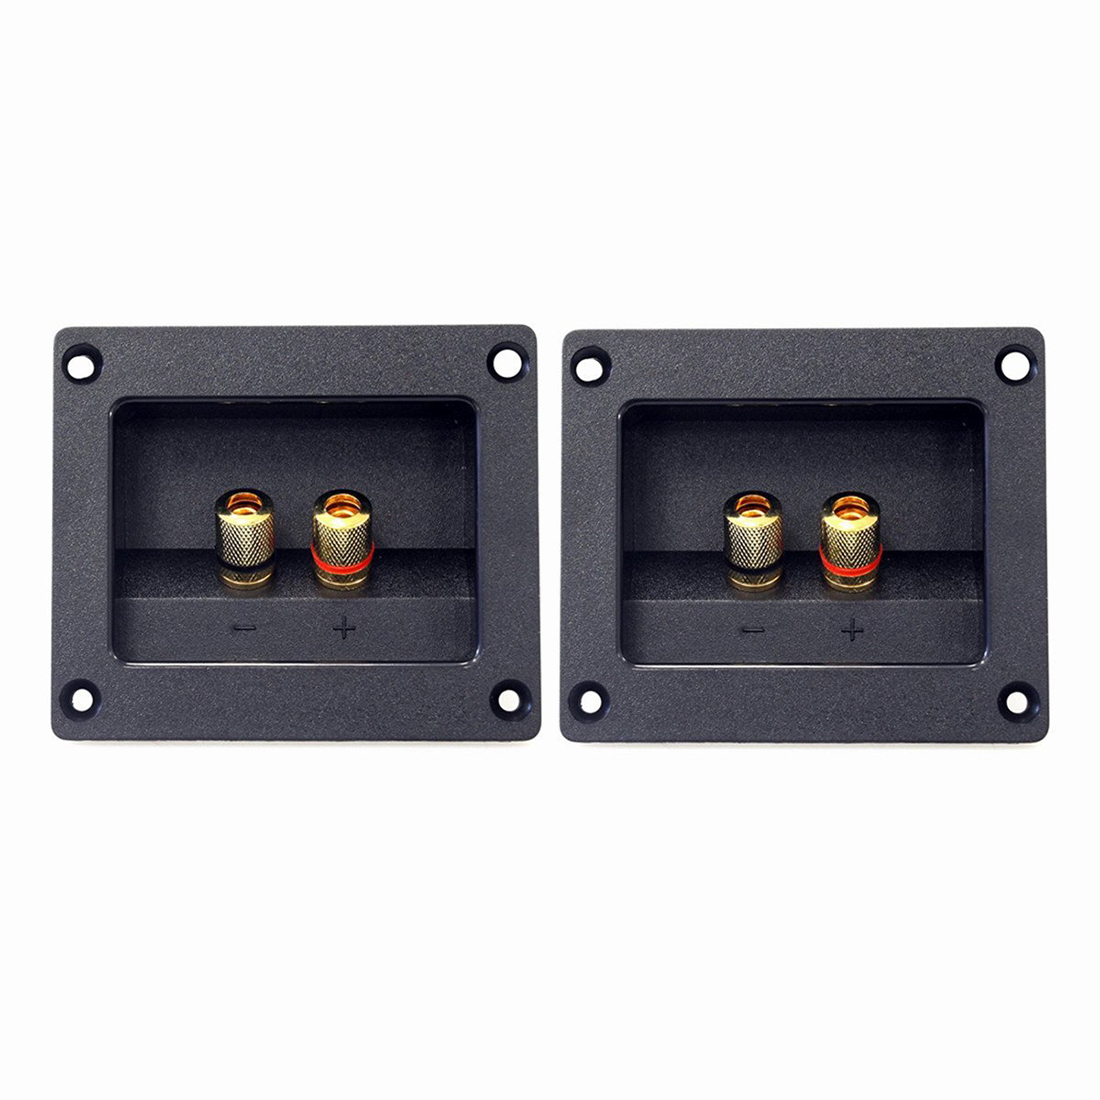 2pcs DIY Home Car Stereo 2-way Speaker Box Terminal Round Square Spring Cup Connector Binding Post Banana jack and plugs Subwo abs terminal box junction box terminal diy speaker accessories loudspeaker wire terminal large circle and crystal column